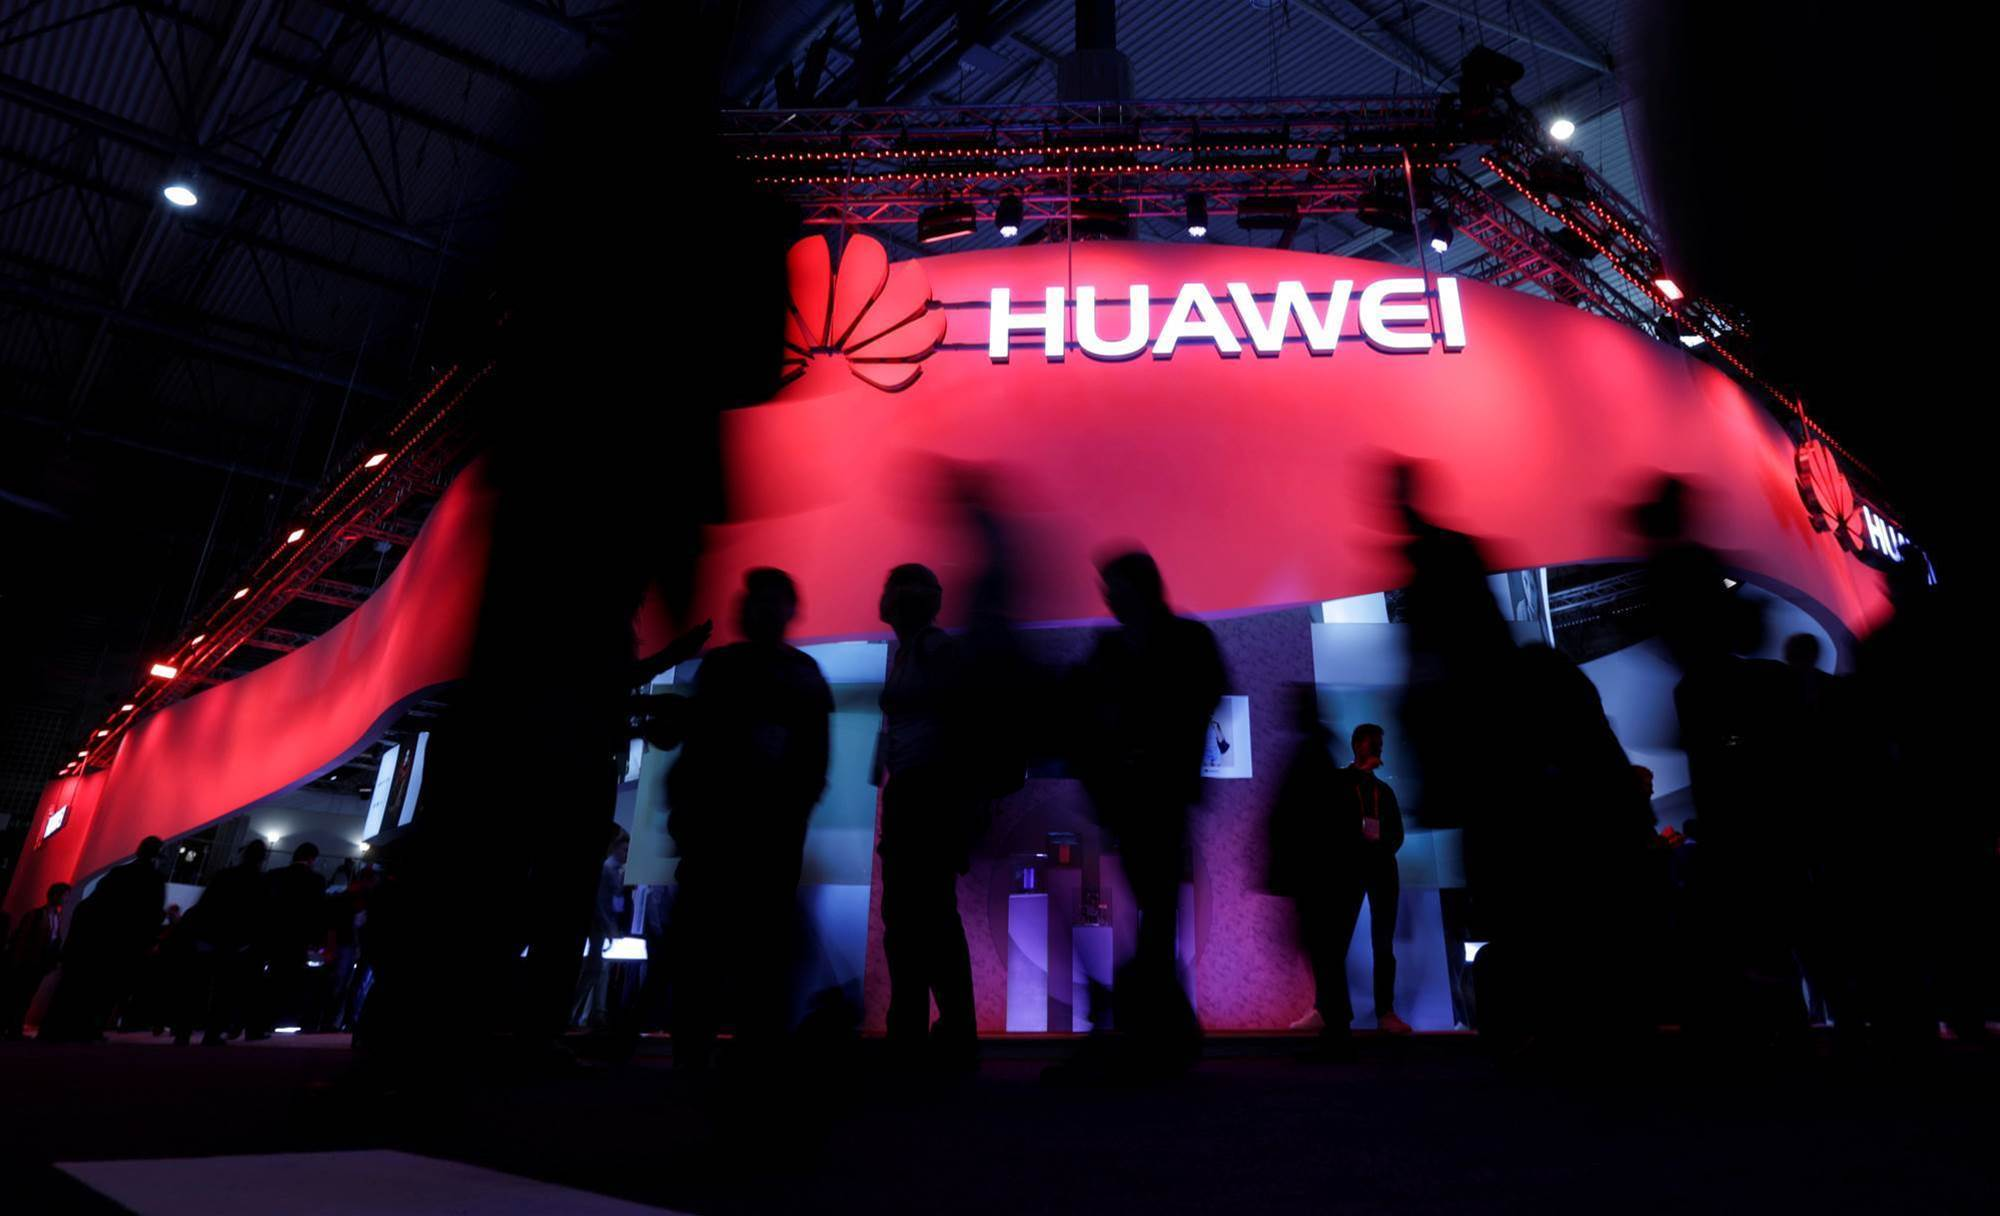 Huawei US$2 billion security pledge followed walkout by GCHQ - sources